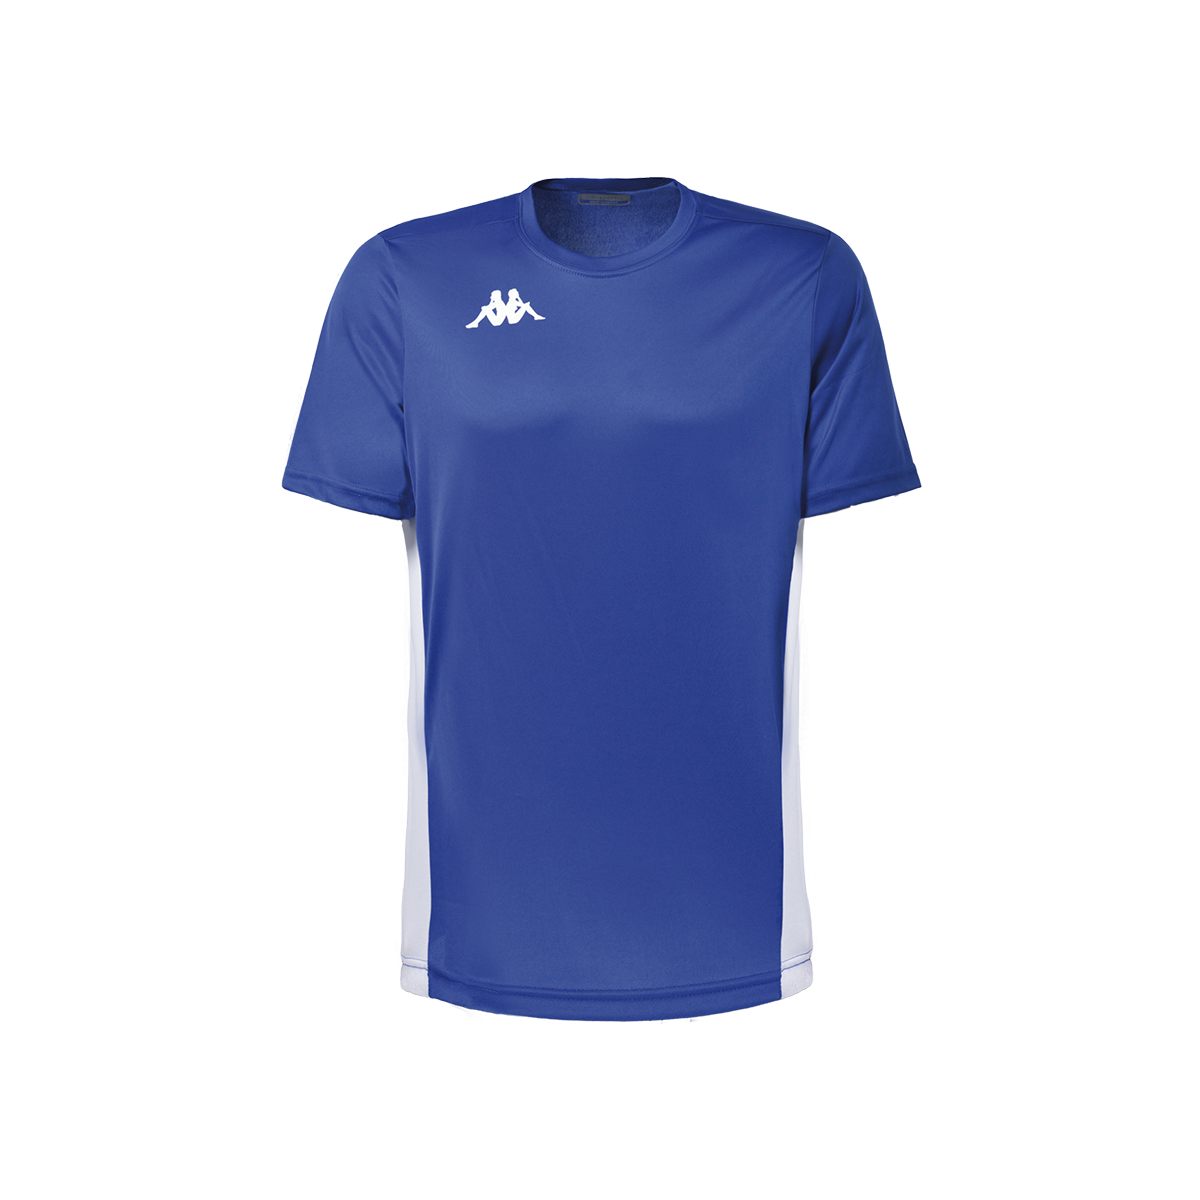 Kappa Wenet Match Shirt SS - Blue Nautic